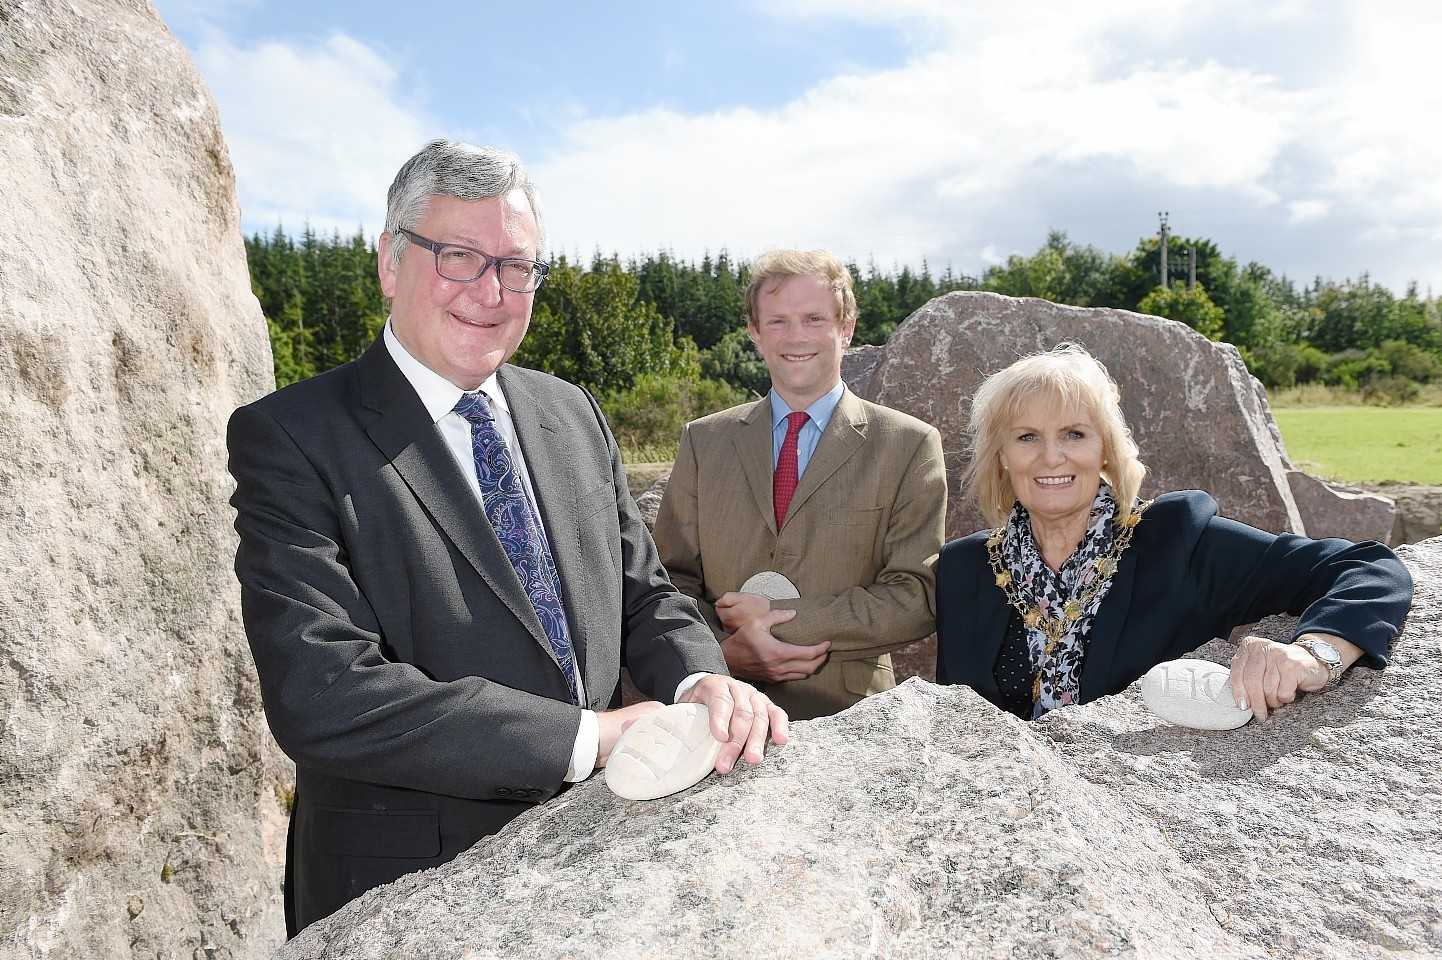 Fergus Ewing MSP, John Stuart Earl of Moray and Helen Carmichael with their initials carved in pebbles beside the giant boulders marking the start of the development.